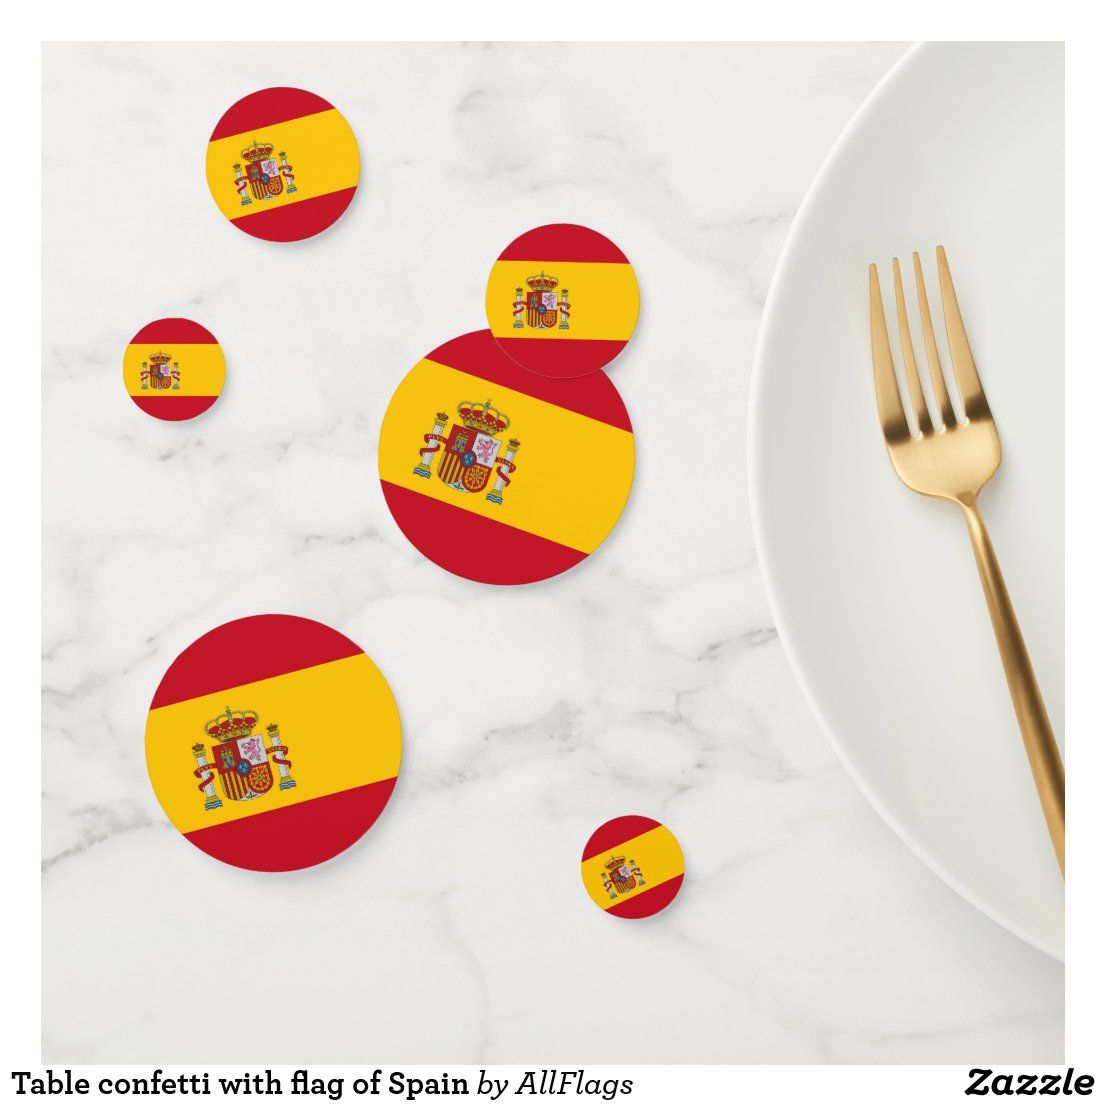 Table confetti with flag of Spain